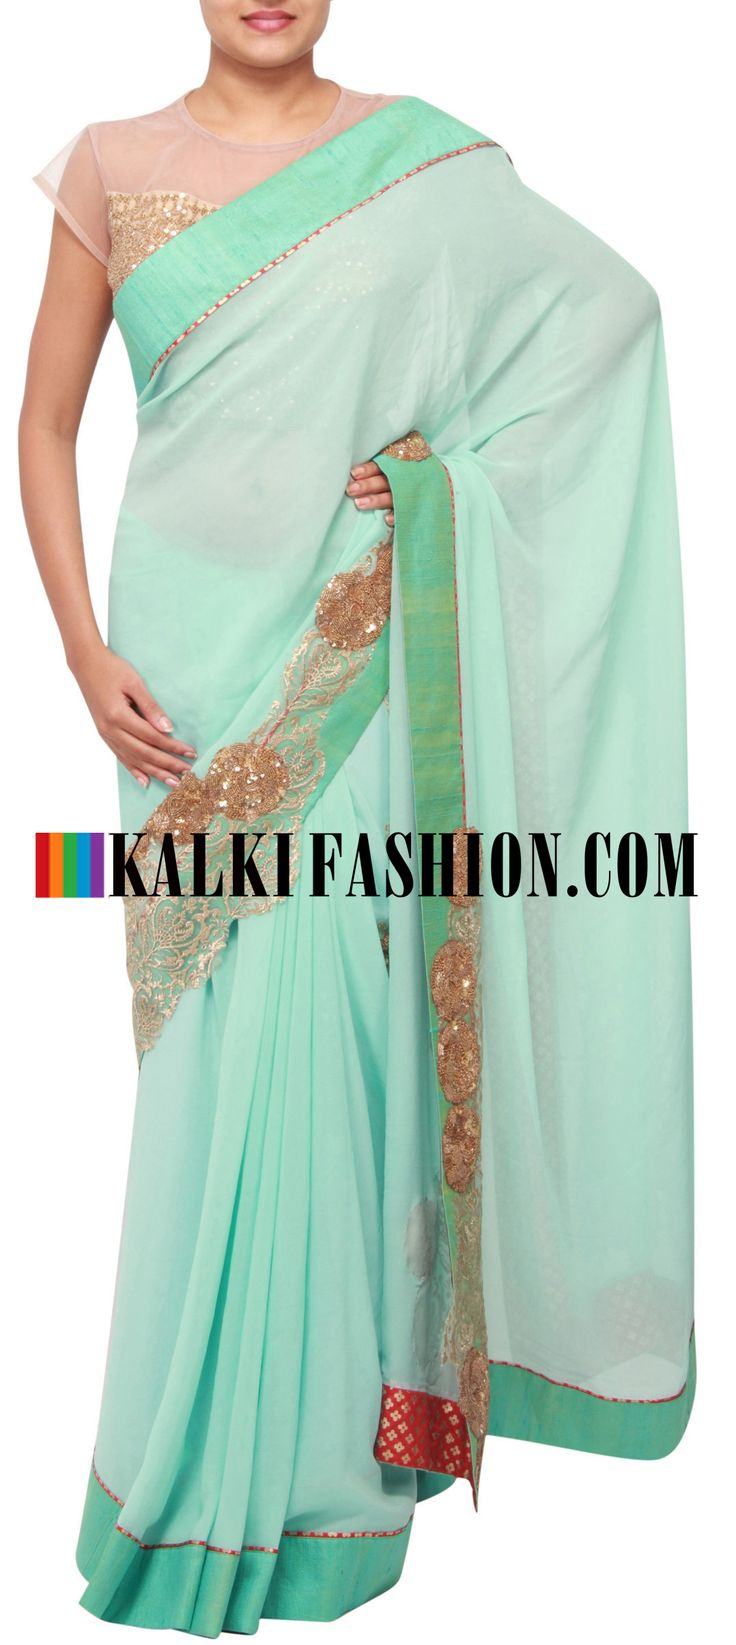 Get this beautiful saree here: http://www.kalkifashion.com/pista-green-saree-adorn-in-zari-embroidery-only-on-kalki.html Free shipping worldwide.